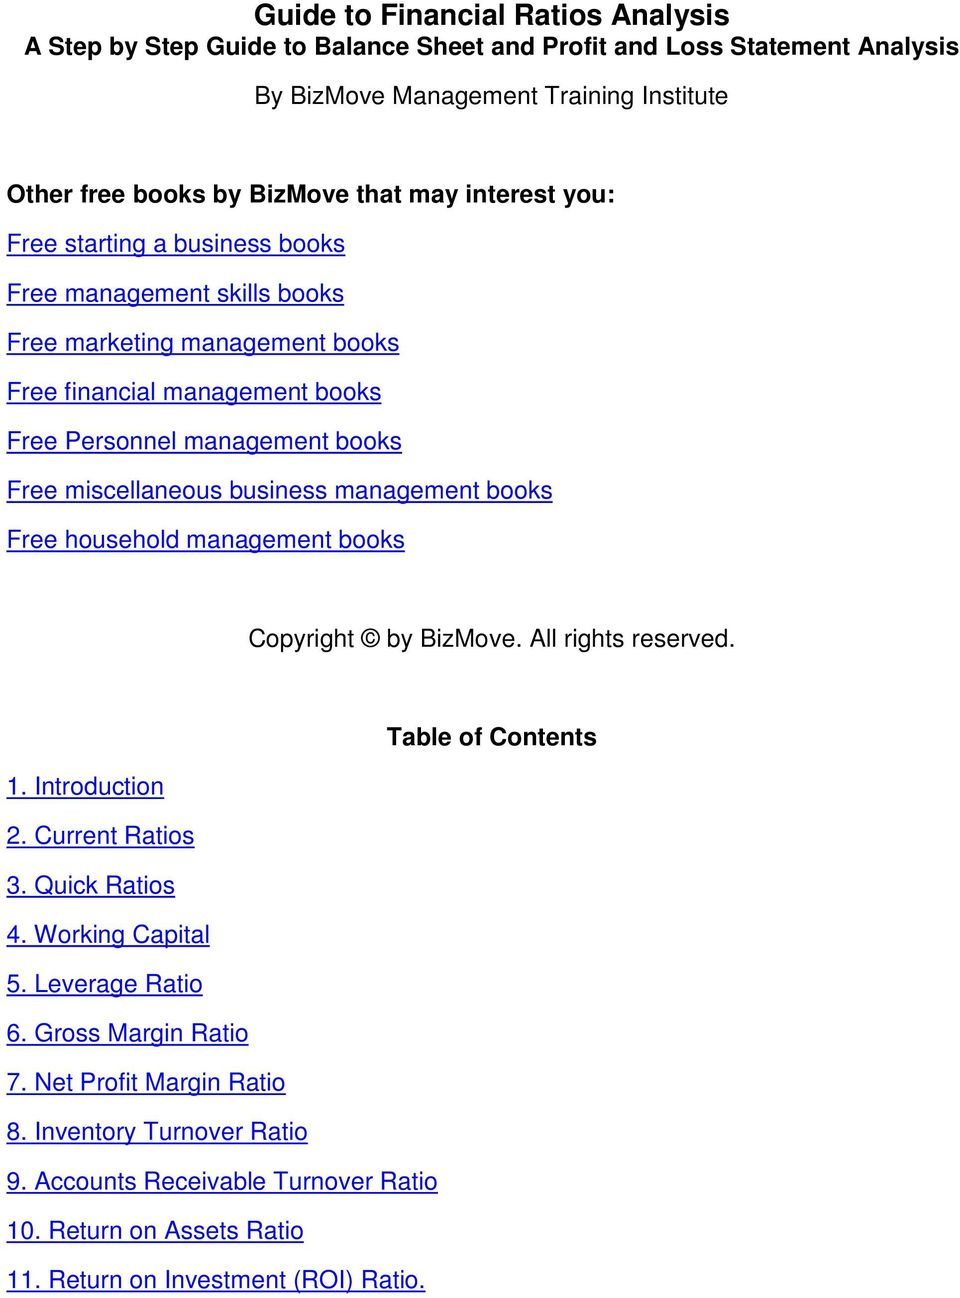 business management books Free household management books Copyright by BizMove. All rights reserved. Table of Contents 1. Introduction 2. Current Ratios 3. Quick Ratios 4. Working Capital 5.